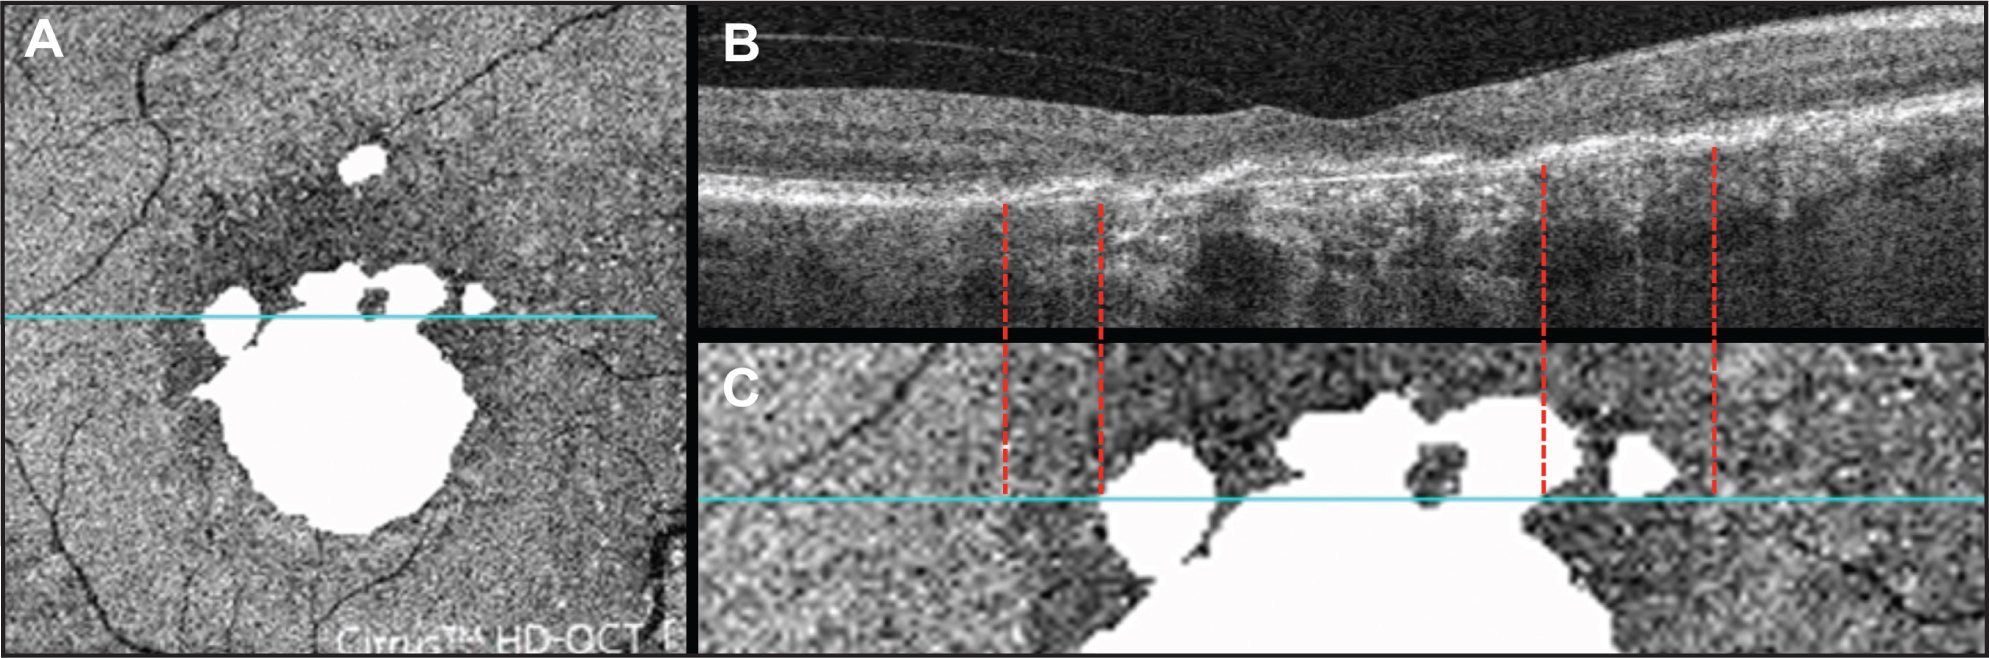 Correlation between individual B-scan and pattern observed on outer retinal en face image. (A) Baseline en face image with superimposed baseline GA (same as Figure 2G) and blue line depicting location of B-scan shown in B. (B) B-scan through dark area and GA corresponding to blue line on en face images in A and C. (C) Magnified portion of en face image with blue line depicting location of B-scan shown in B. Red dashed lines show correlation between dark area on en face image and IS/OS disruption on B-scan and between GA and outer retinal atrophy and increased choroidal reflectivity seen on B-scan.